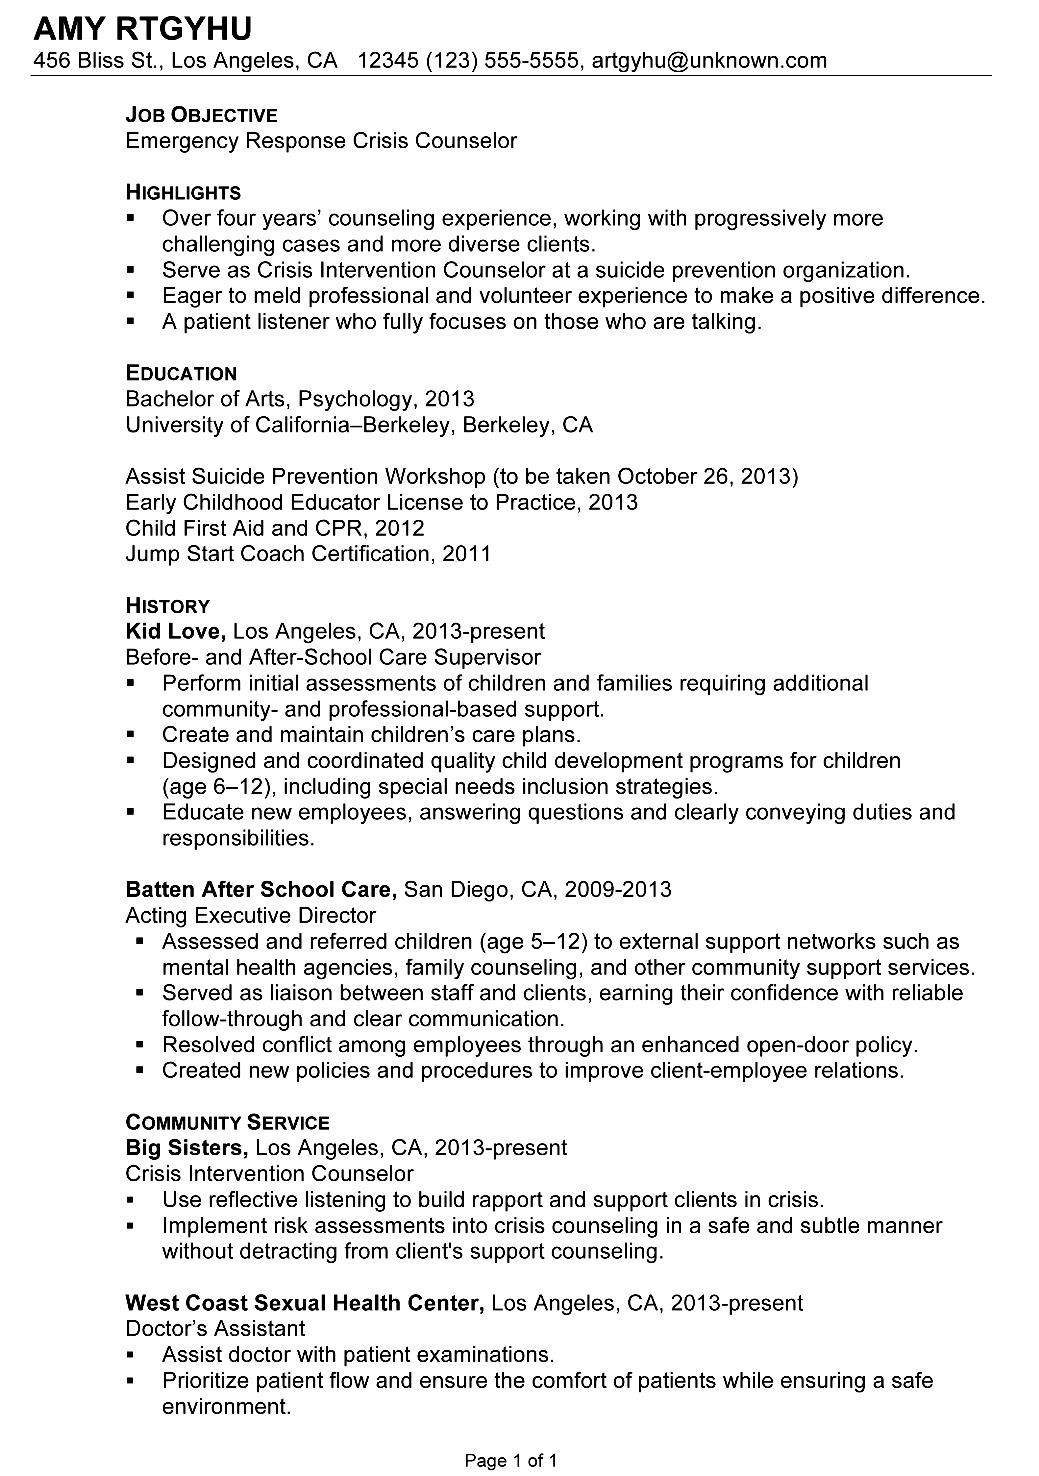 Management Resume Samples Free Academic Manager Resume Sample Free Samples Examples